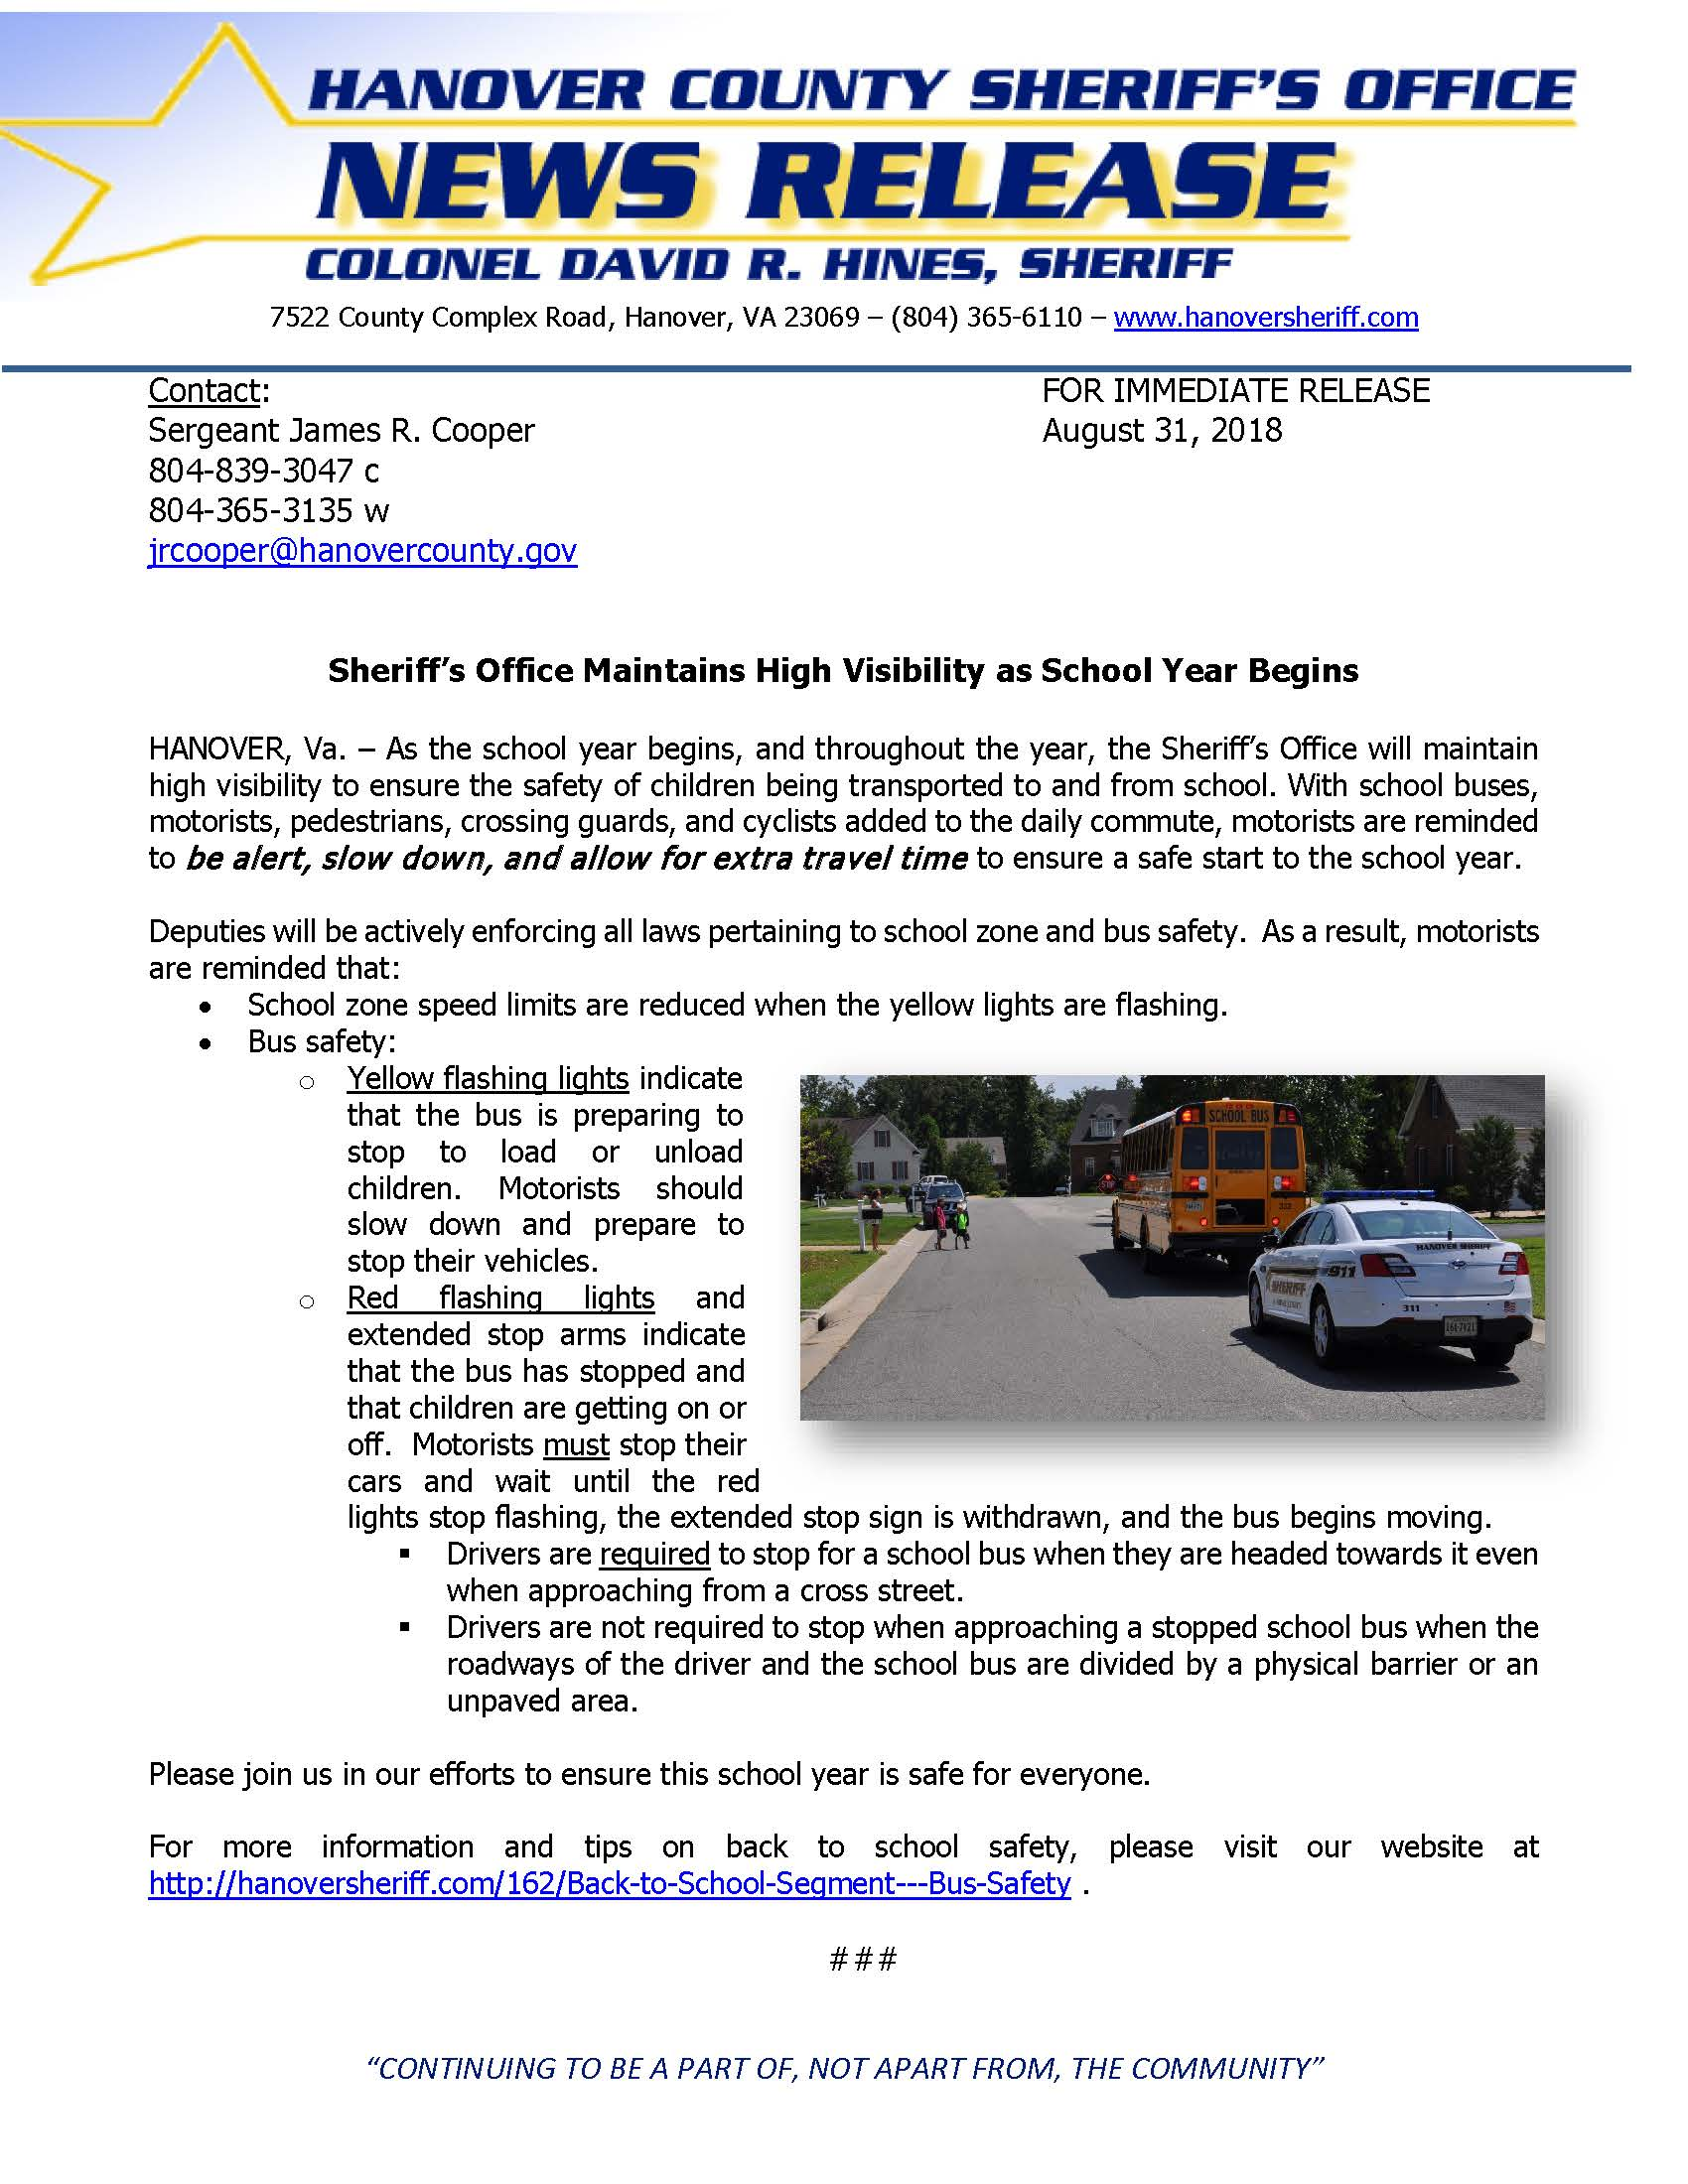 HCSO - High Visibility as School Year Begins- August 31, 2018